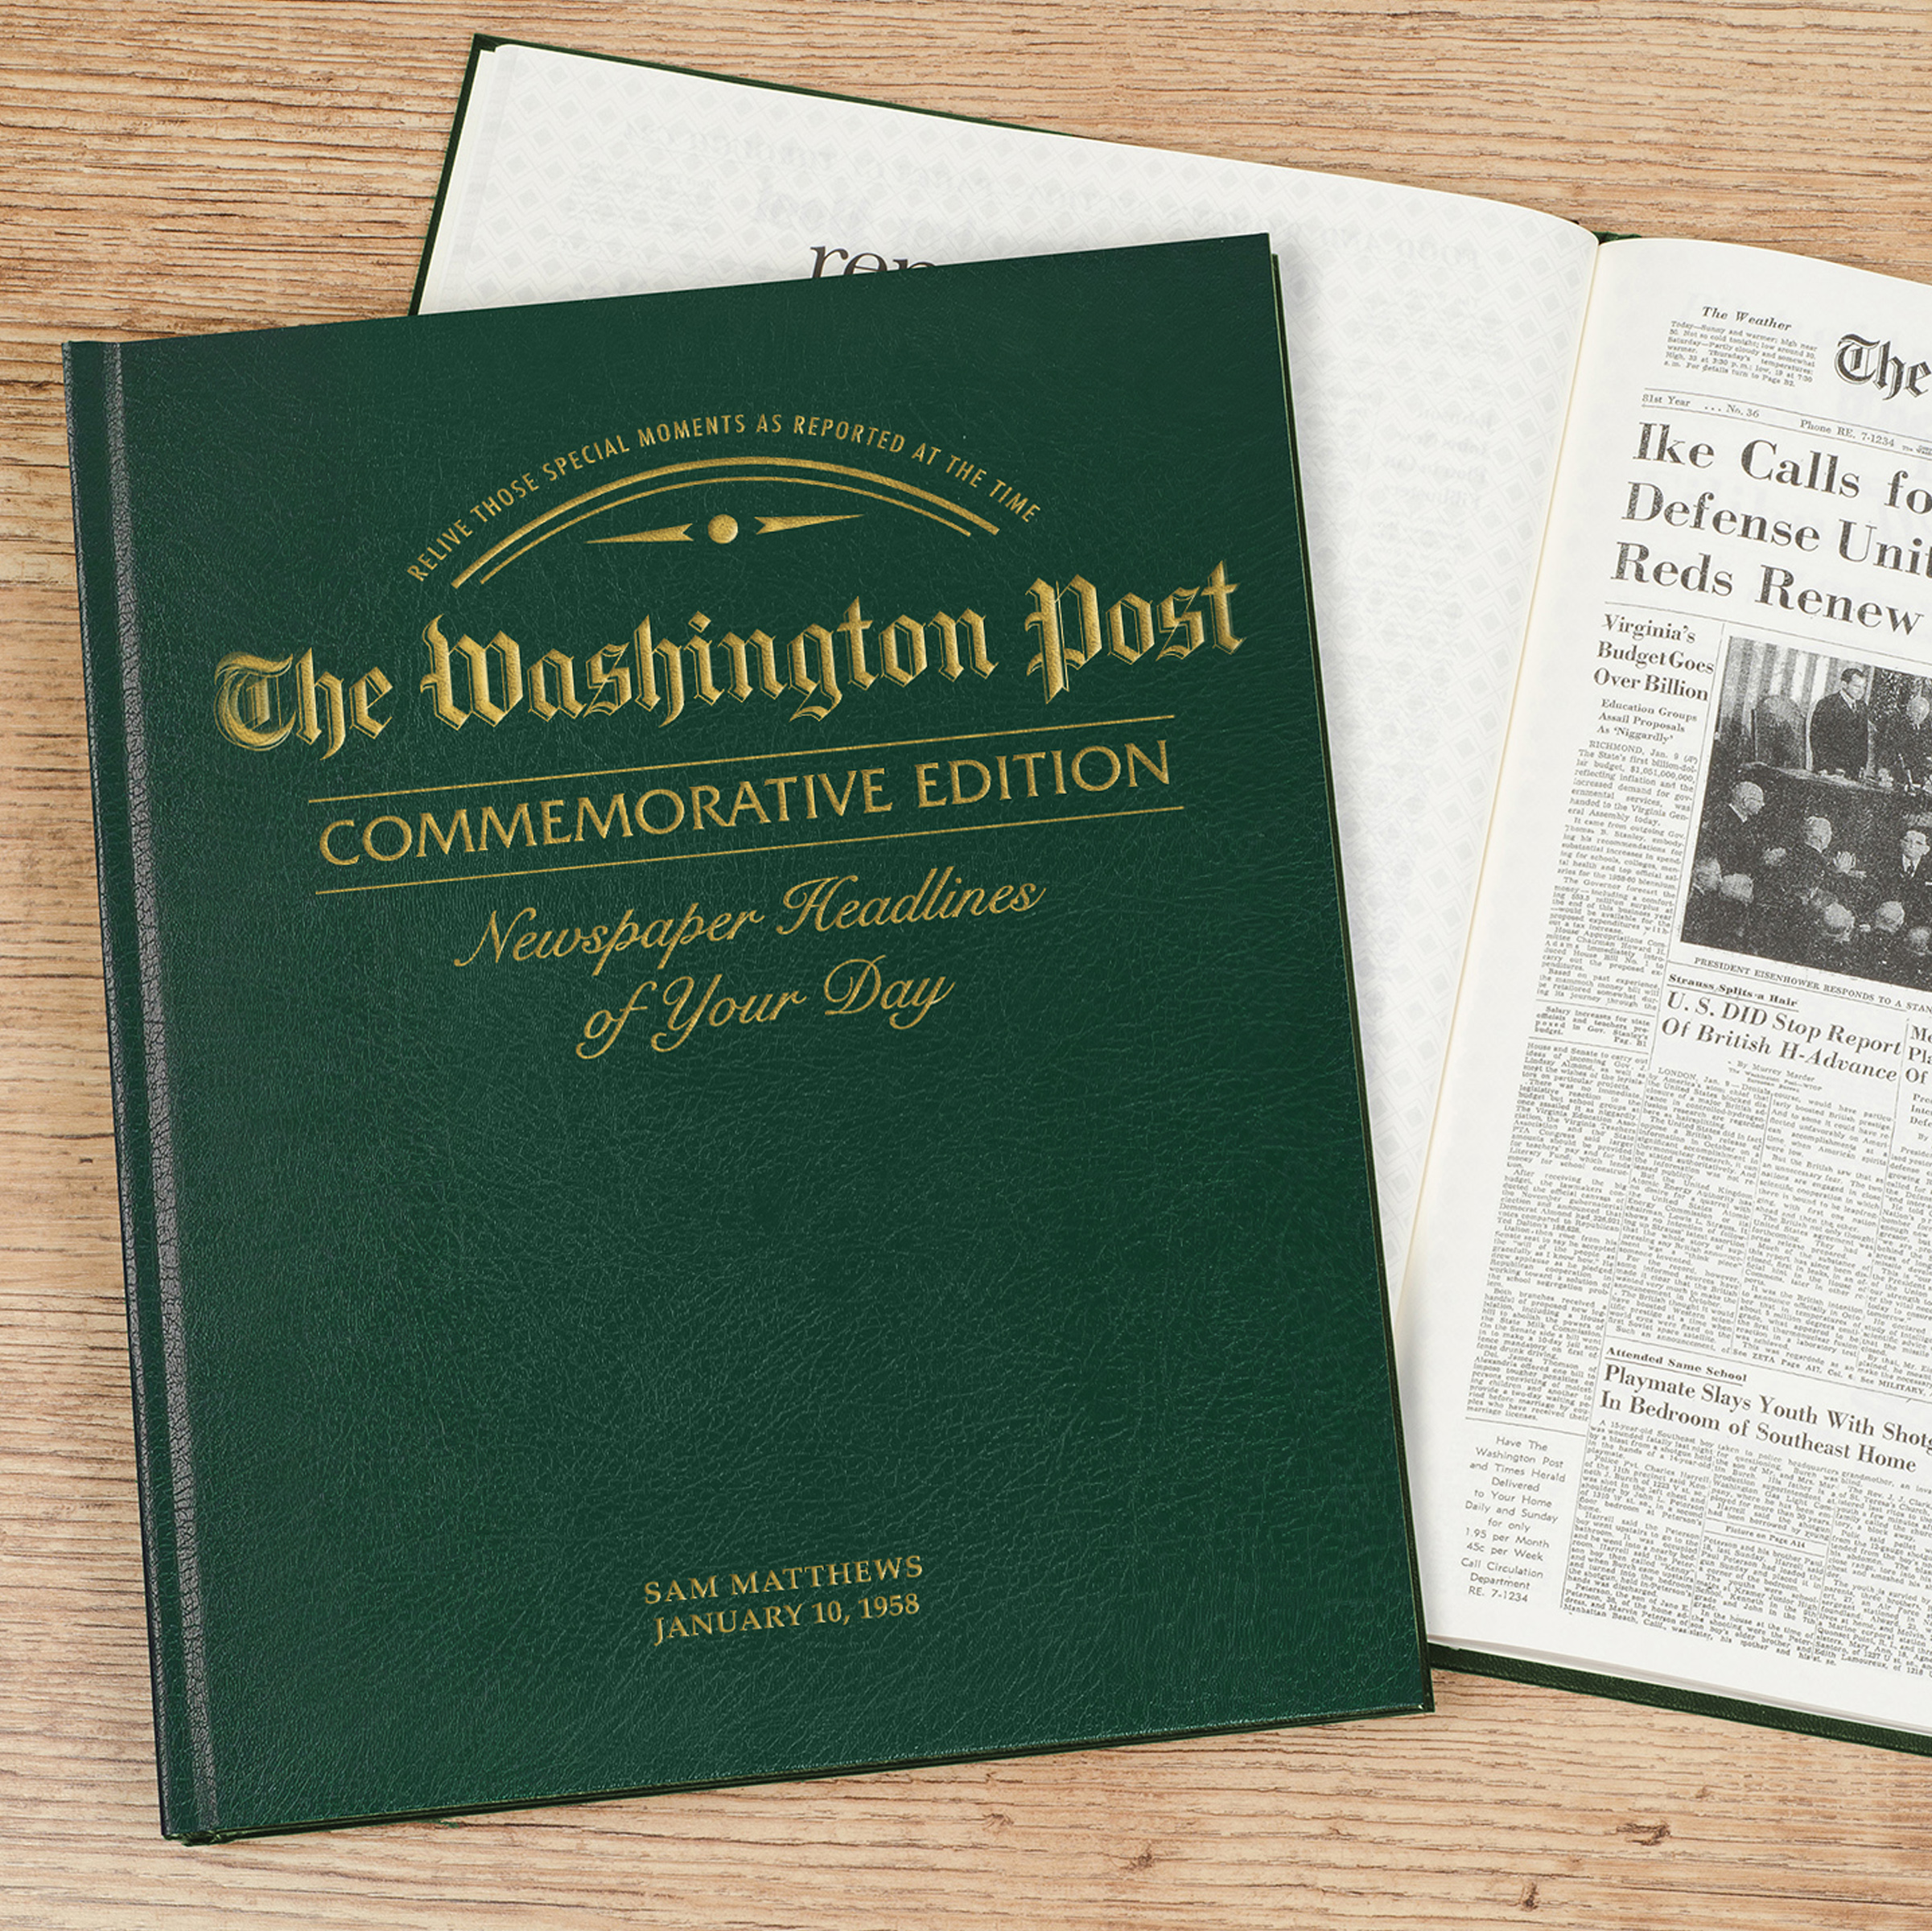 Washington post stock options